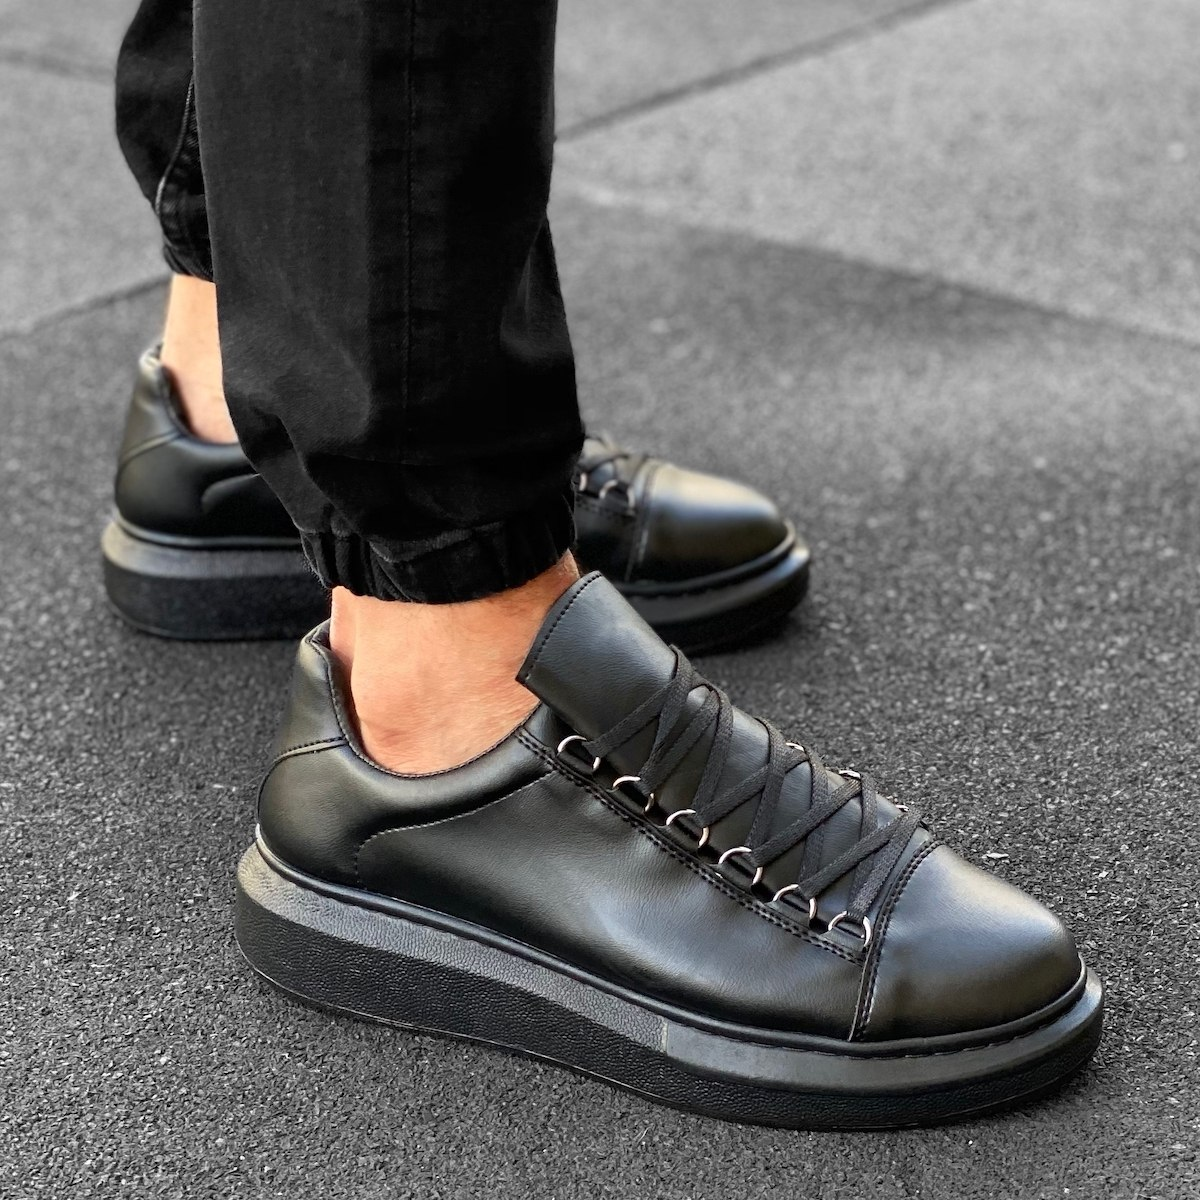 Men's High Sole Low Top Sneakers Shoes Black